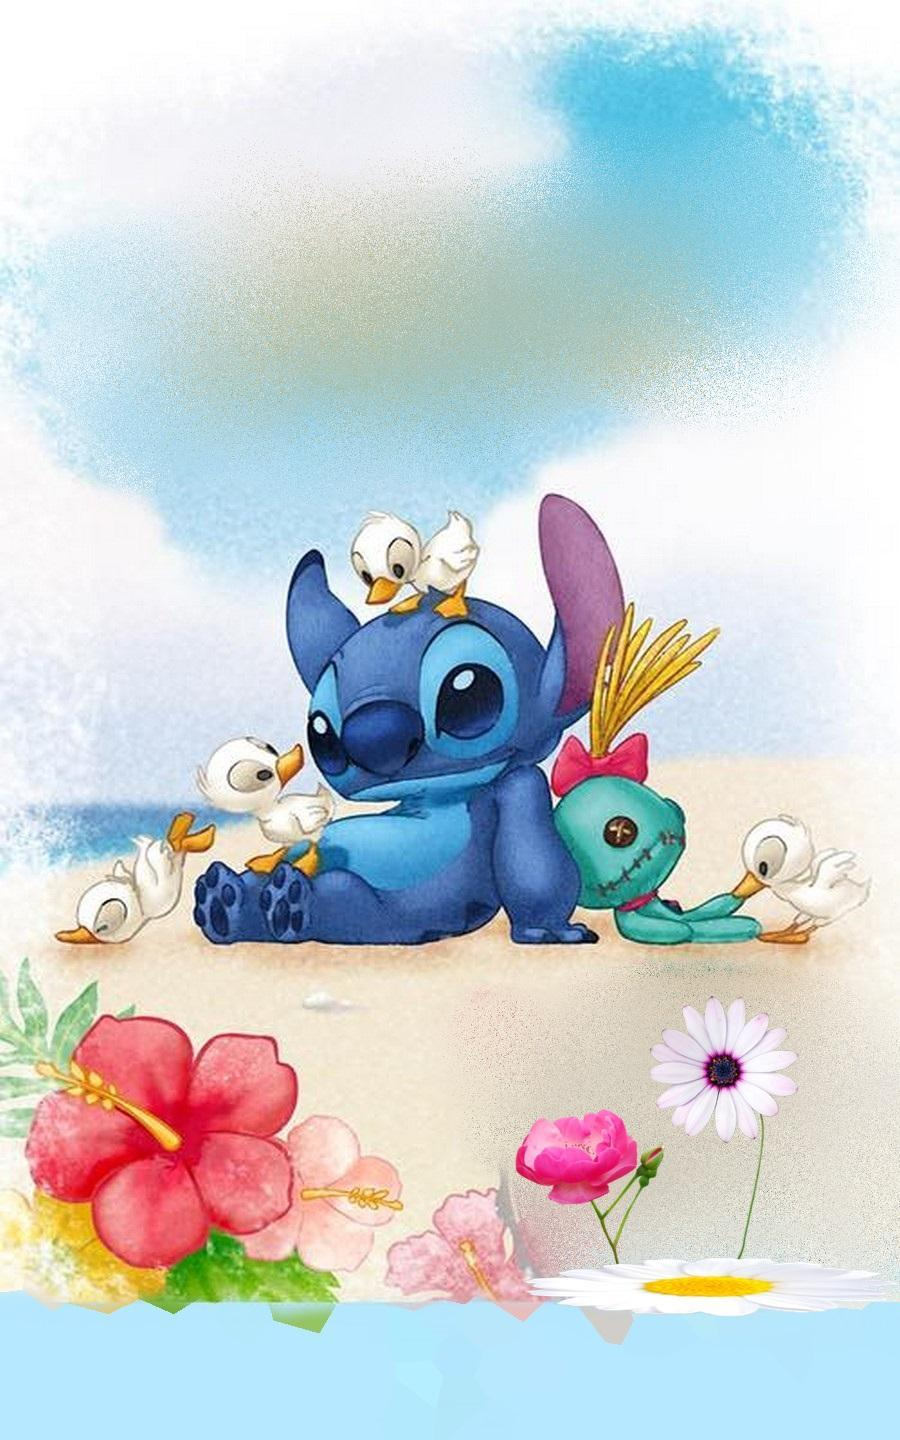 Lilo Stitch Art Wallpaper para Android - APK Descargar